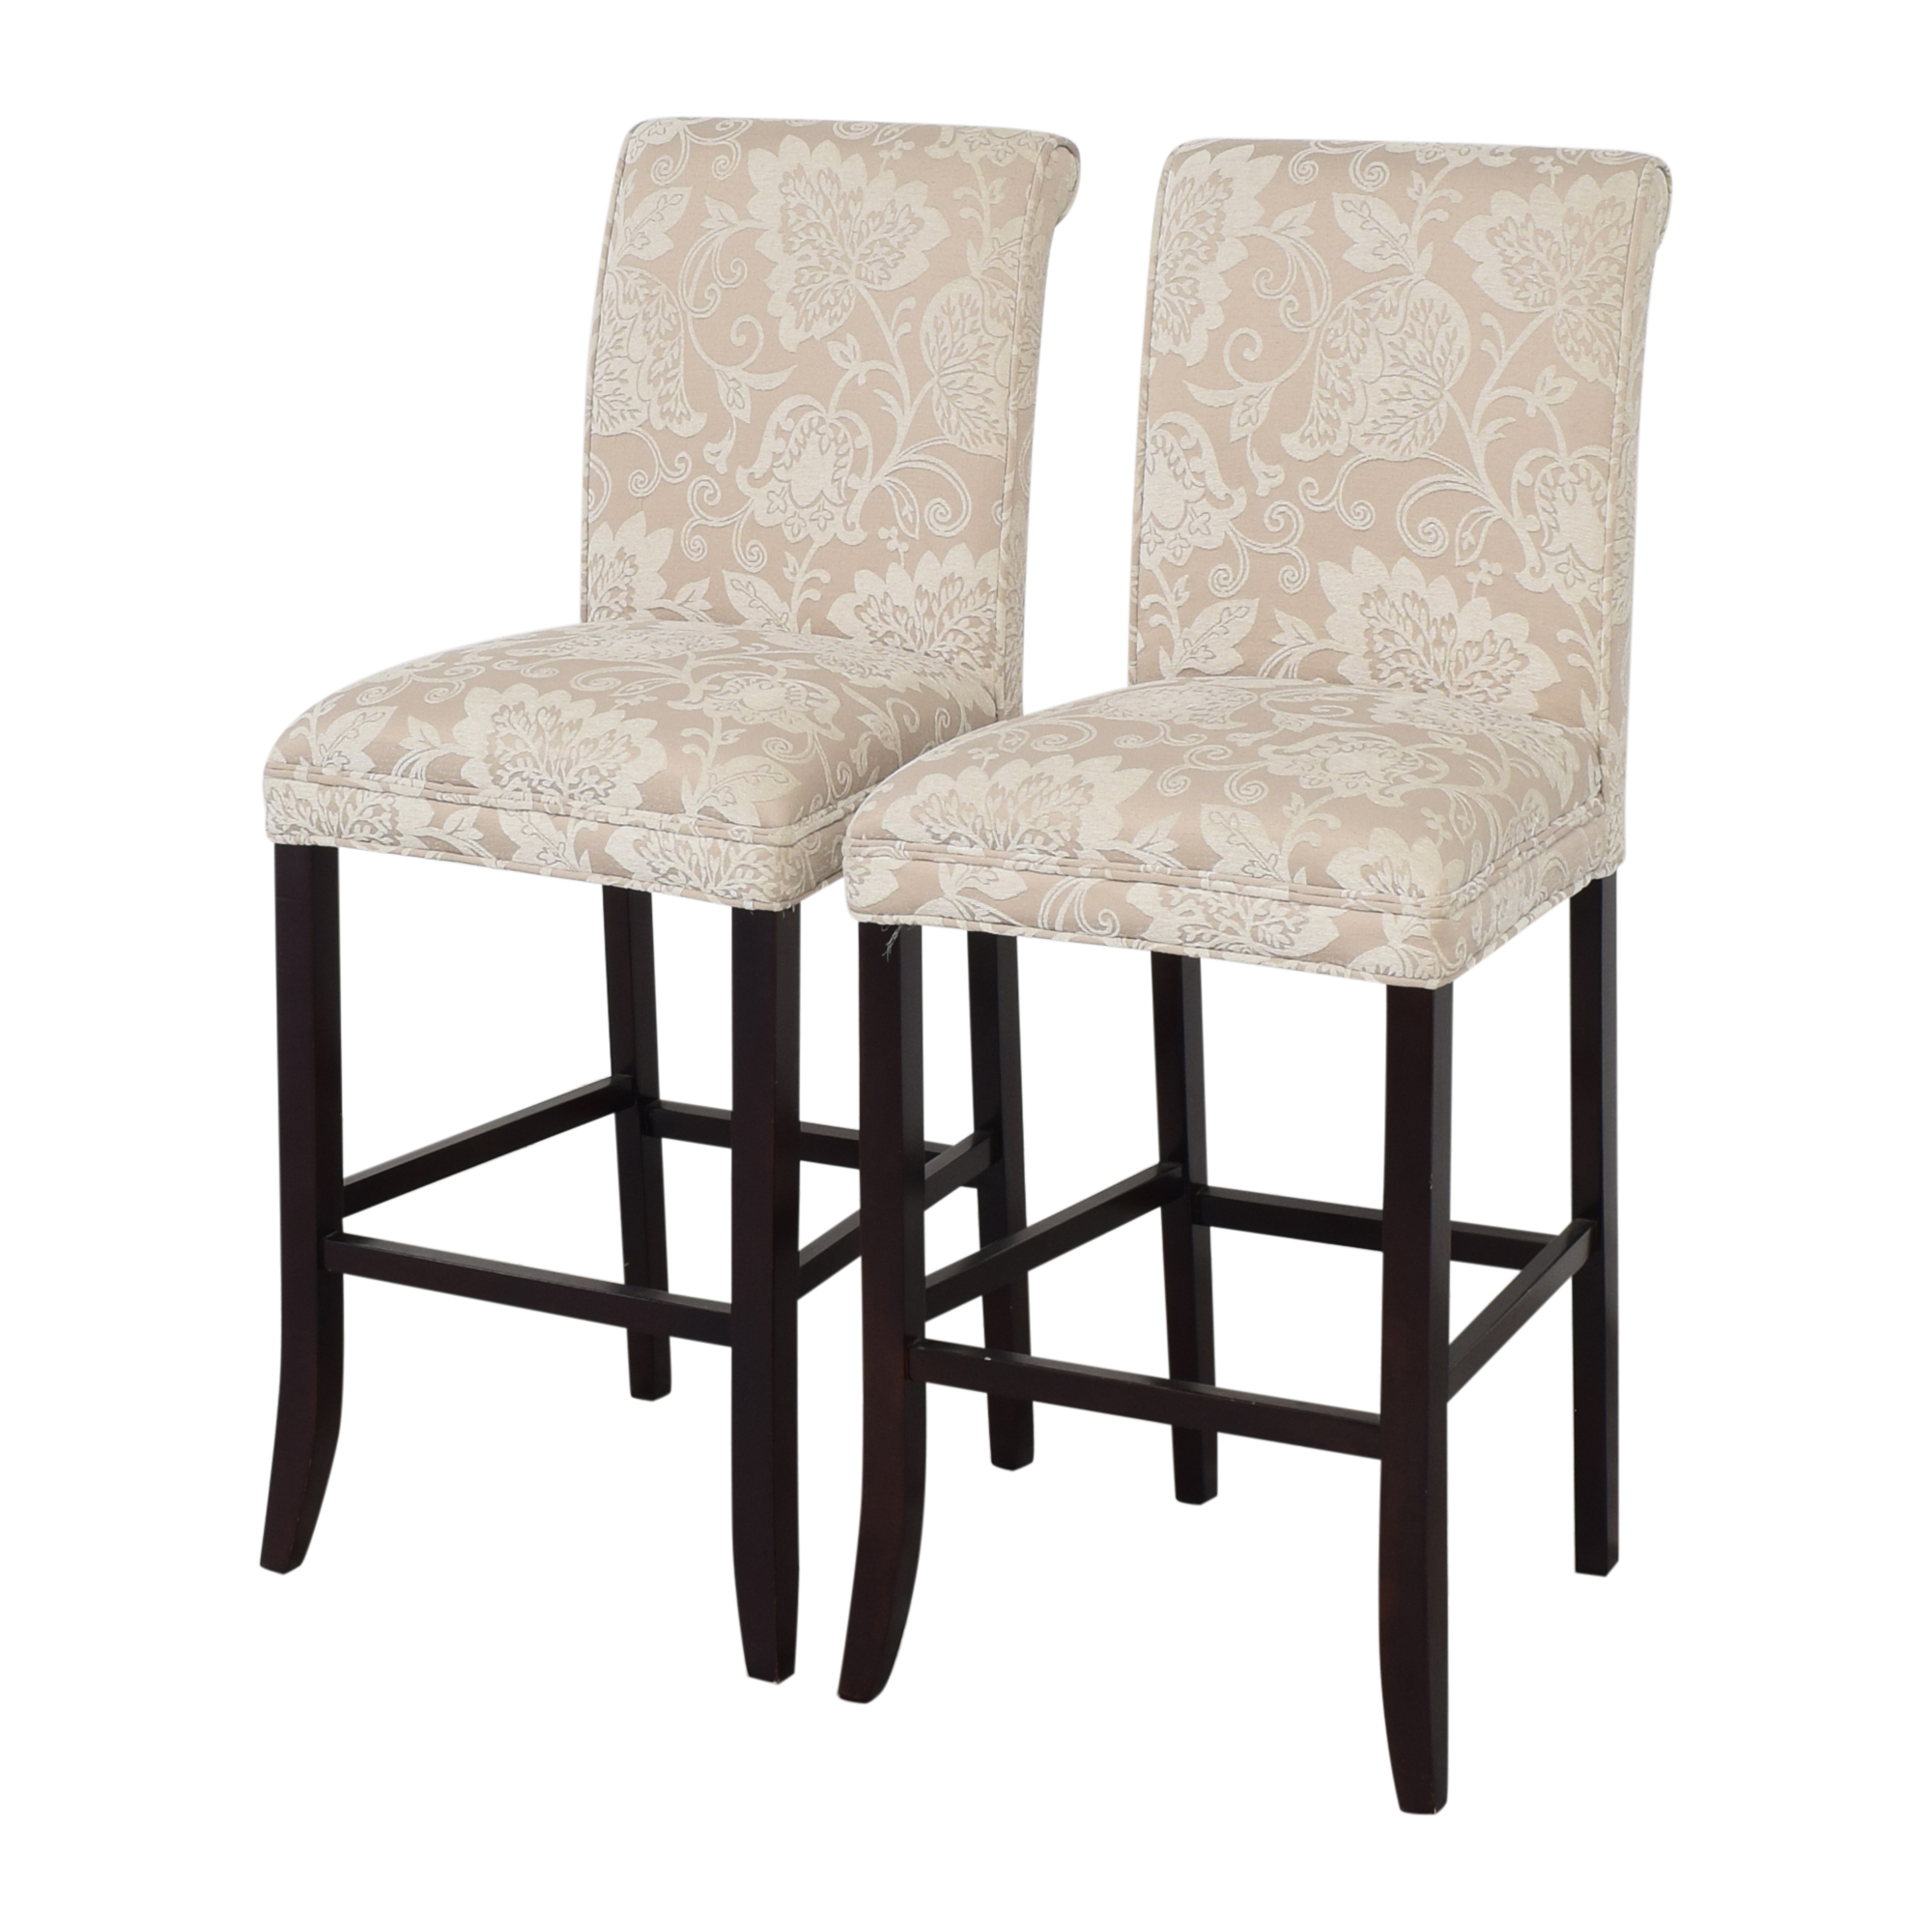 shop Pier 1 Angela Bar Stools Pier 1 Stools